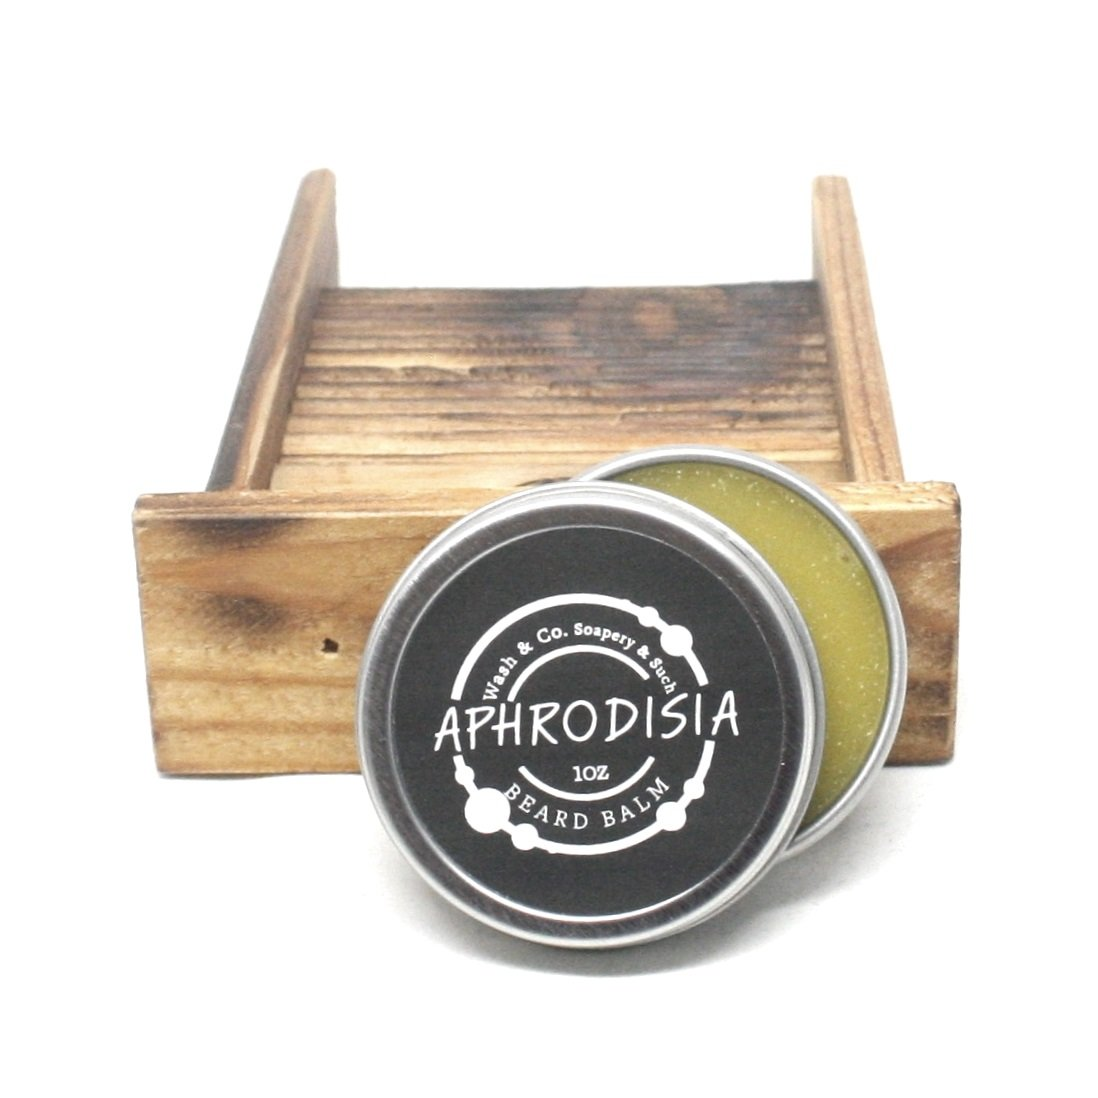 Beard Balm Aphrodisia 1oz Tin